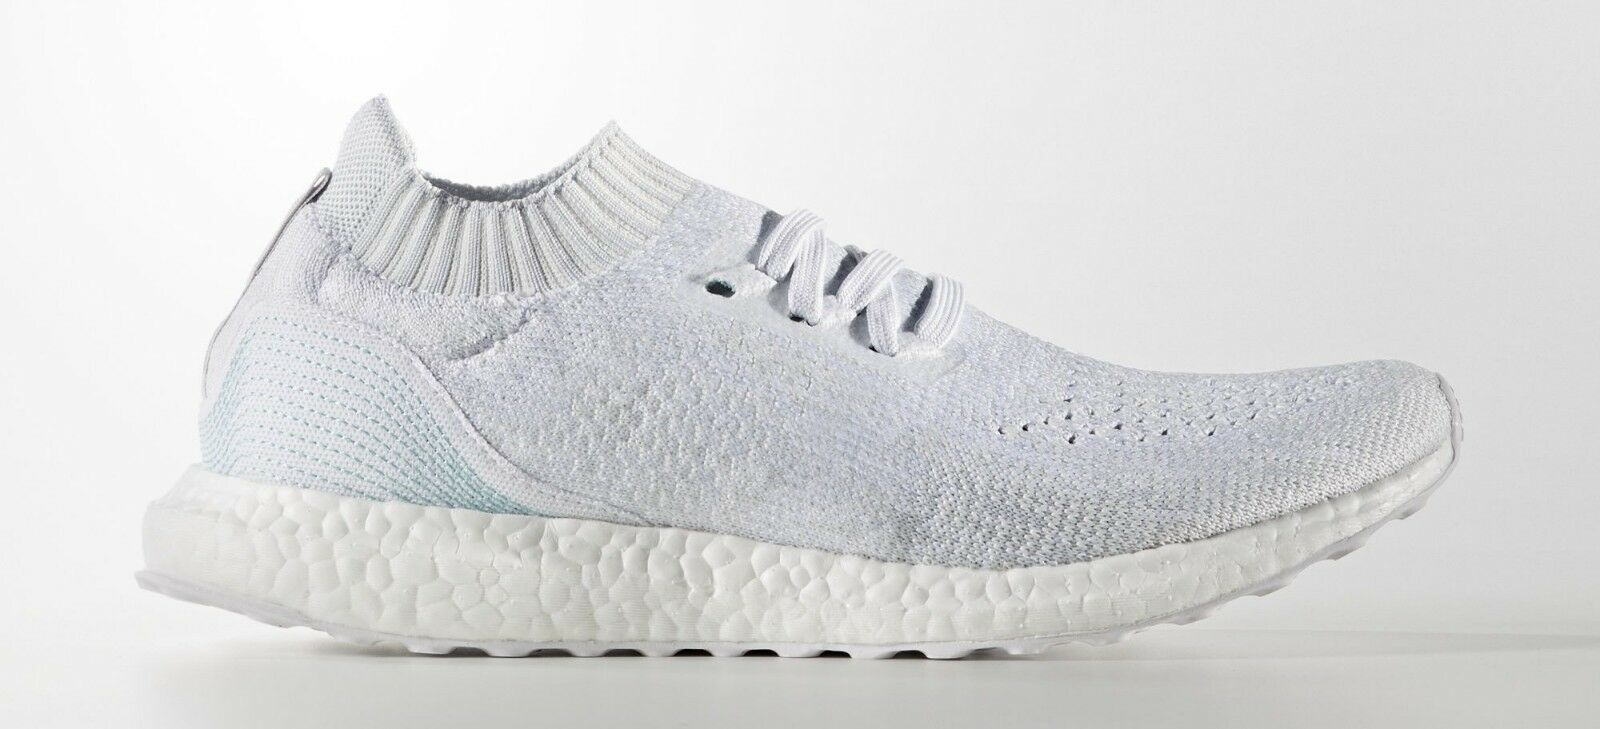 Adidas ultra Boost Parley Recycled cream Uncaged OG nmd eqt cream Recycled iniki air max yeezy 684eab